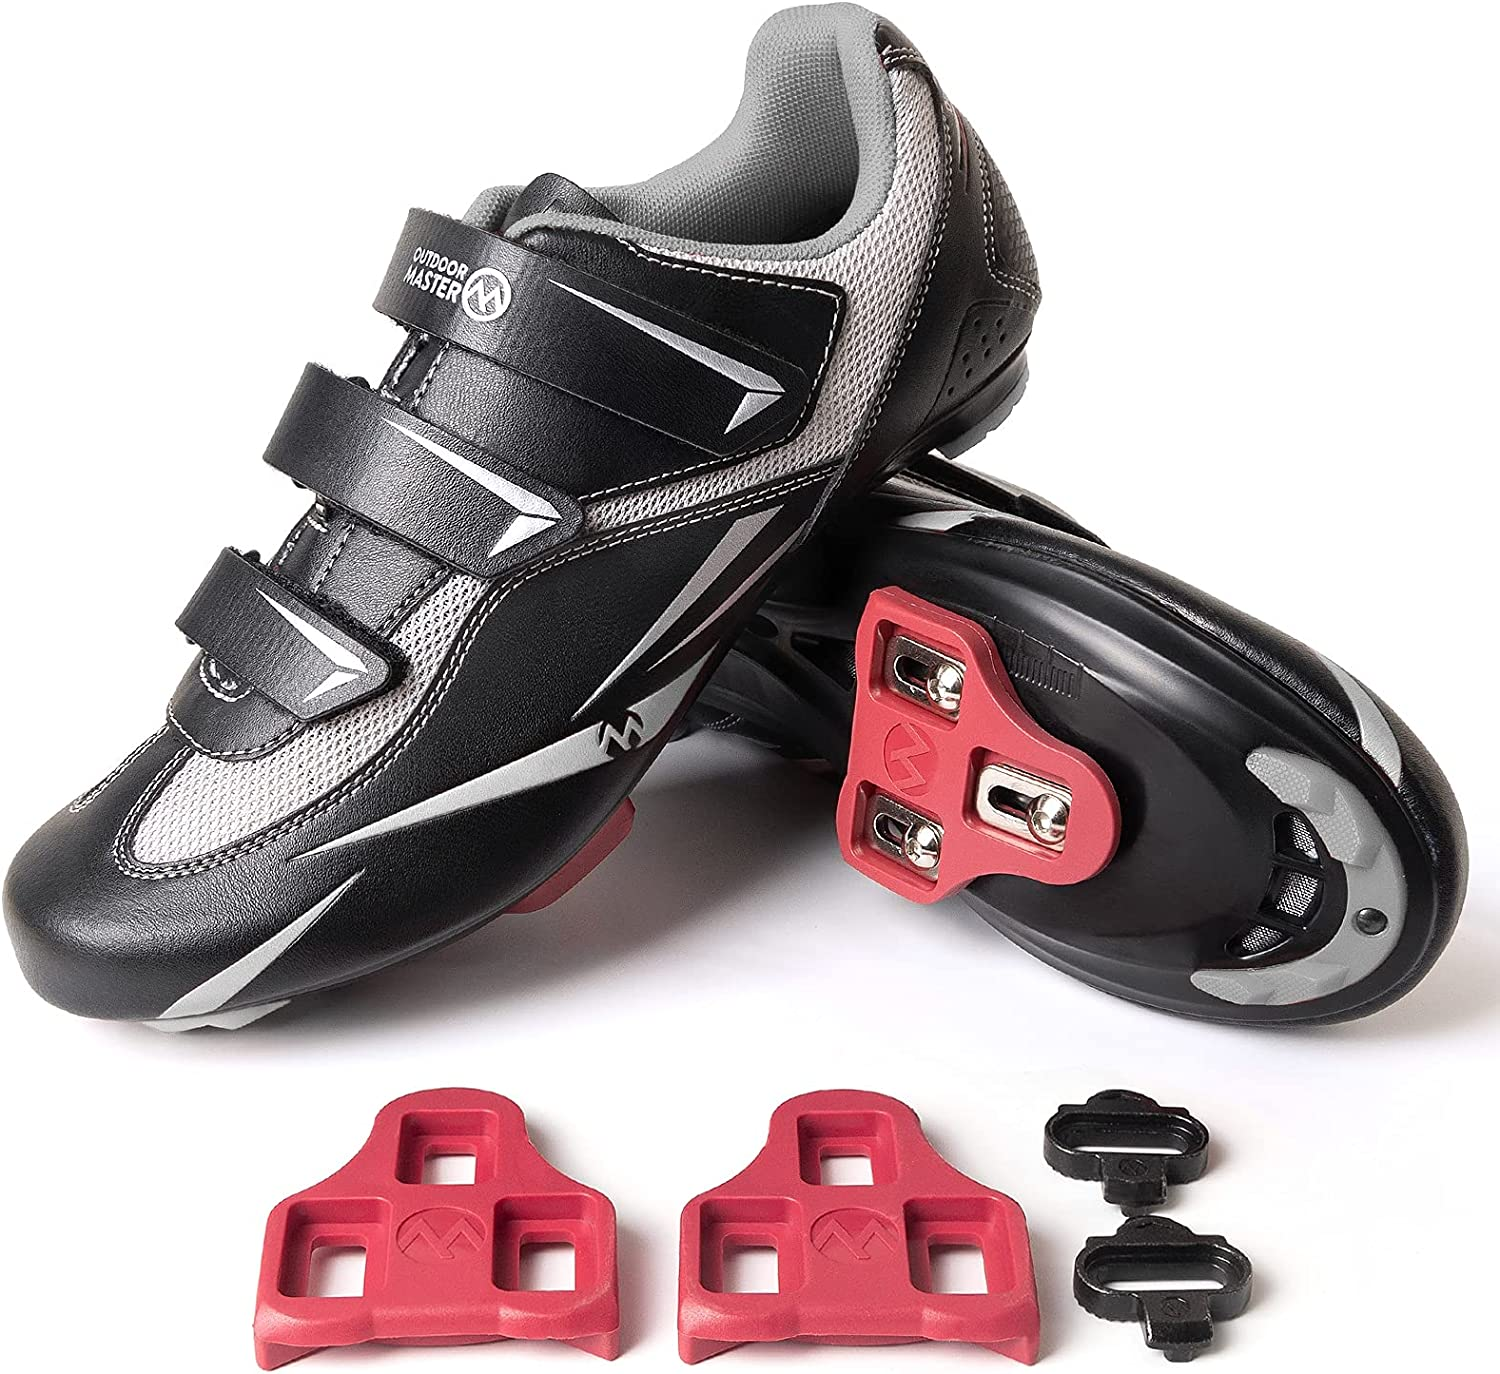 OutdoorMaster Cycling shipfree 25% OFF Shoes Peloton Riding Unisex